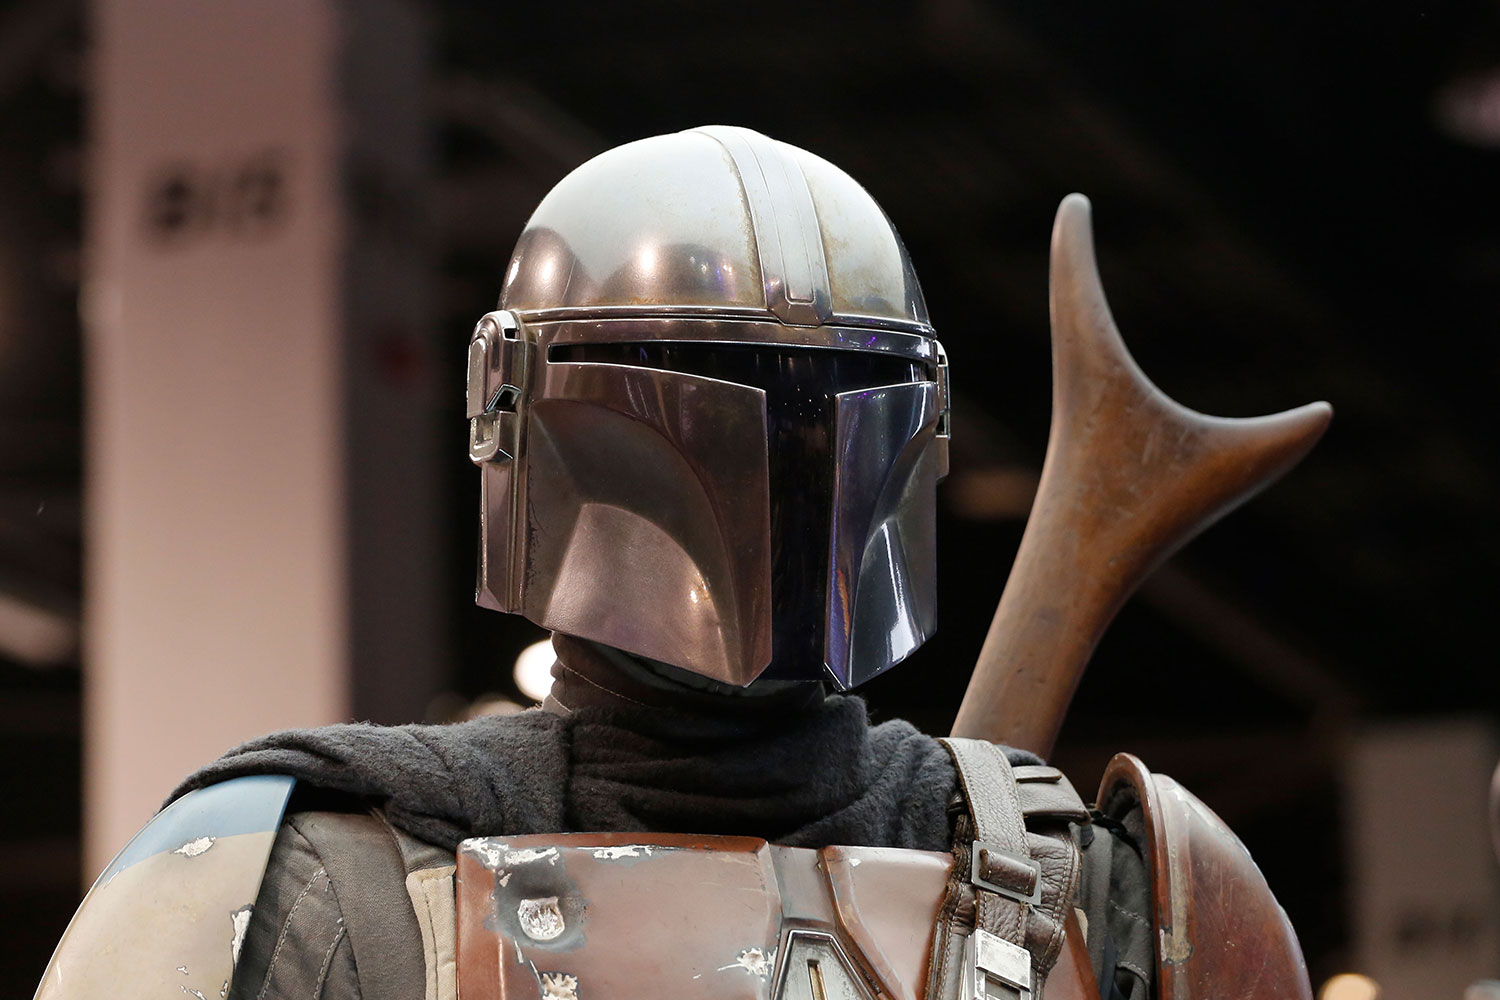 D23 Expo 2019: Costumes of The Mandalorian, The Rise of Skywalker, and More